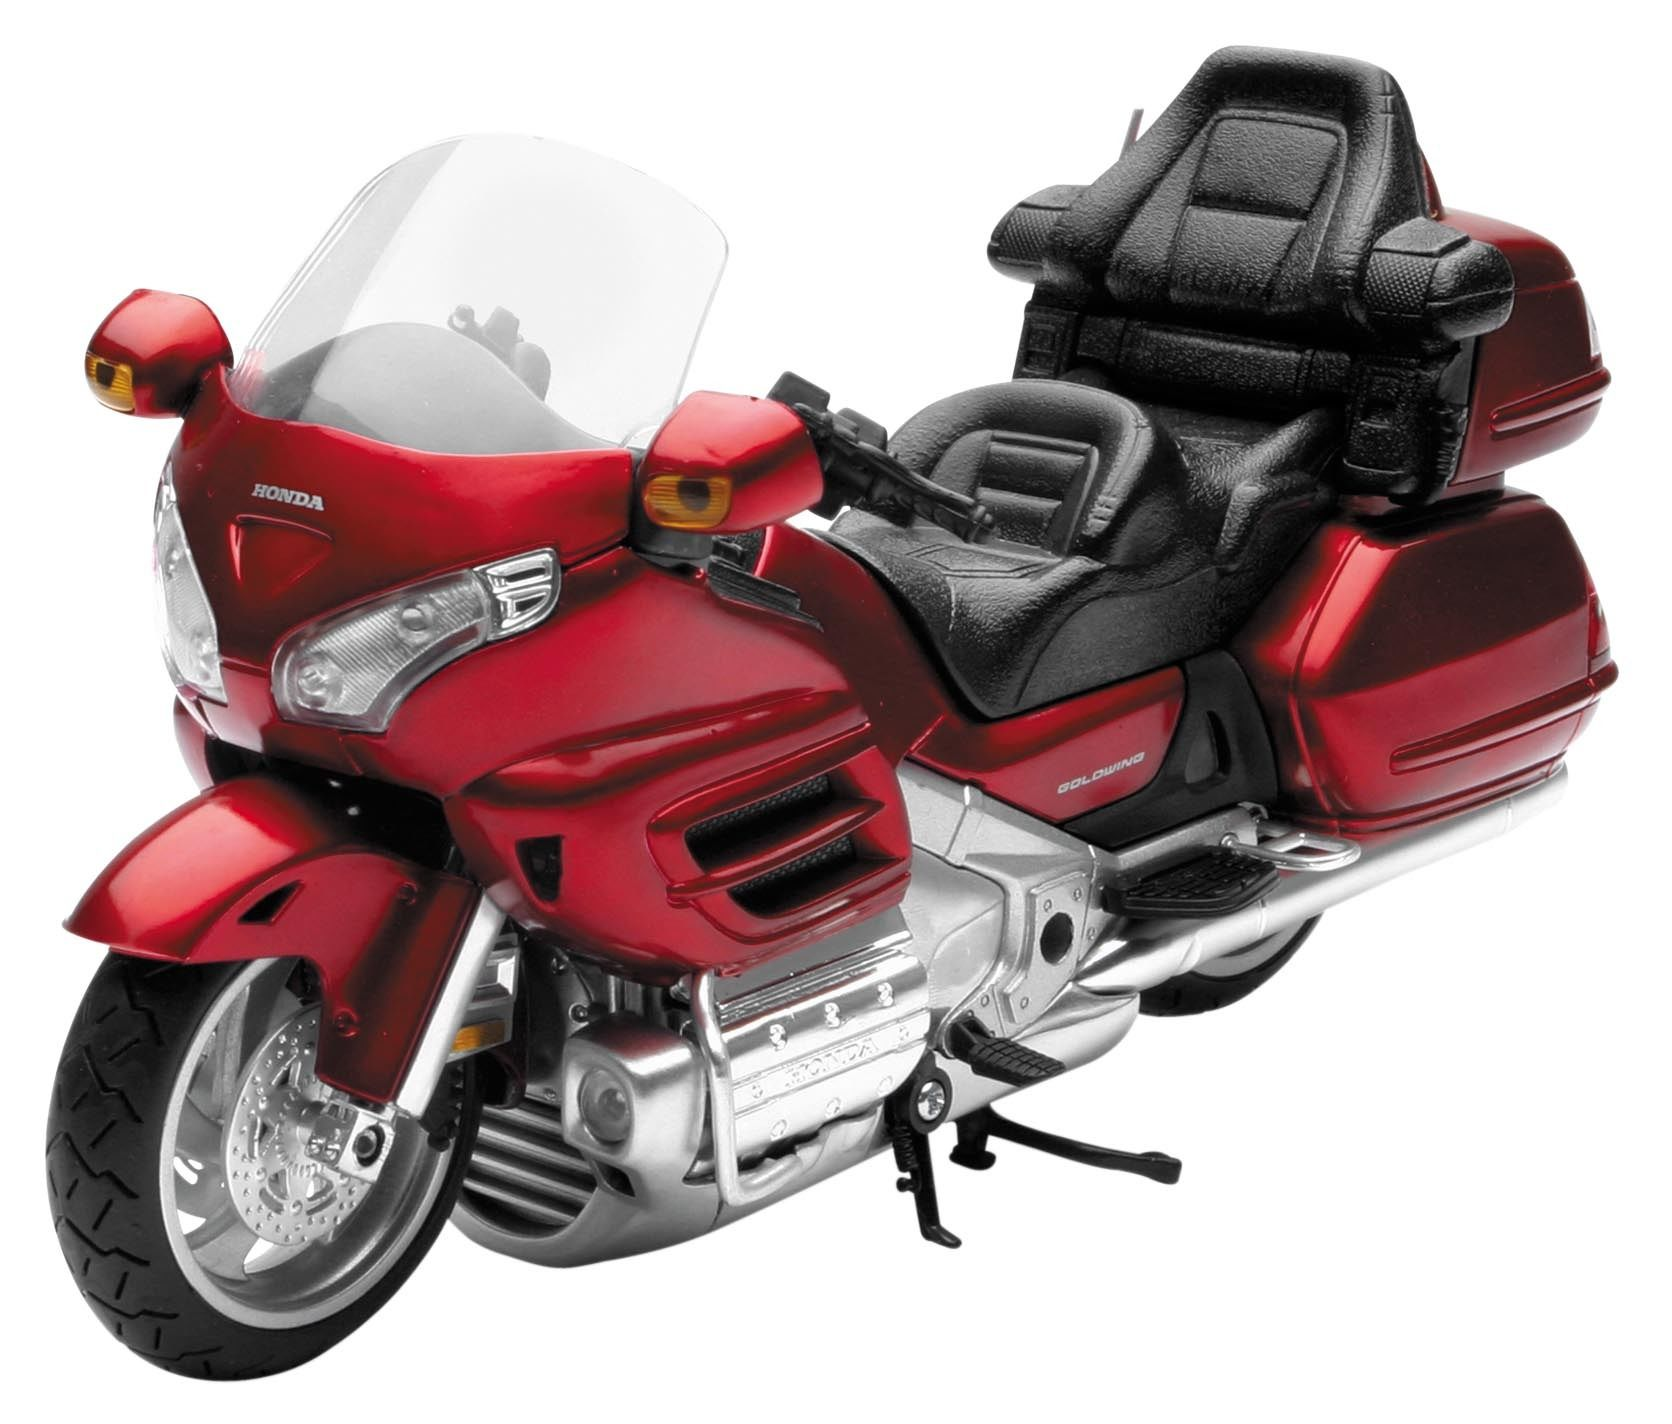 new ray toys 2010 honda goldwing 1 12 model